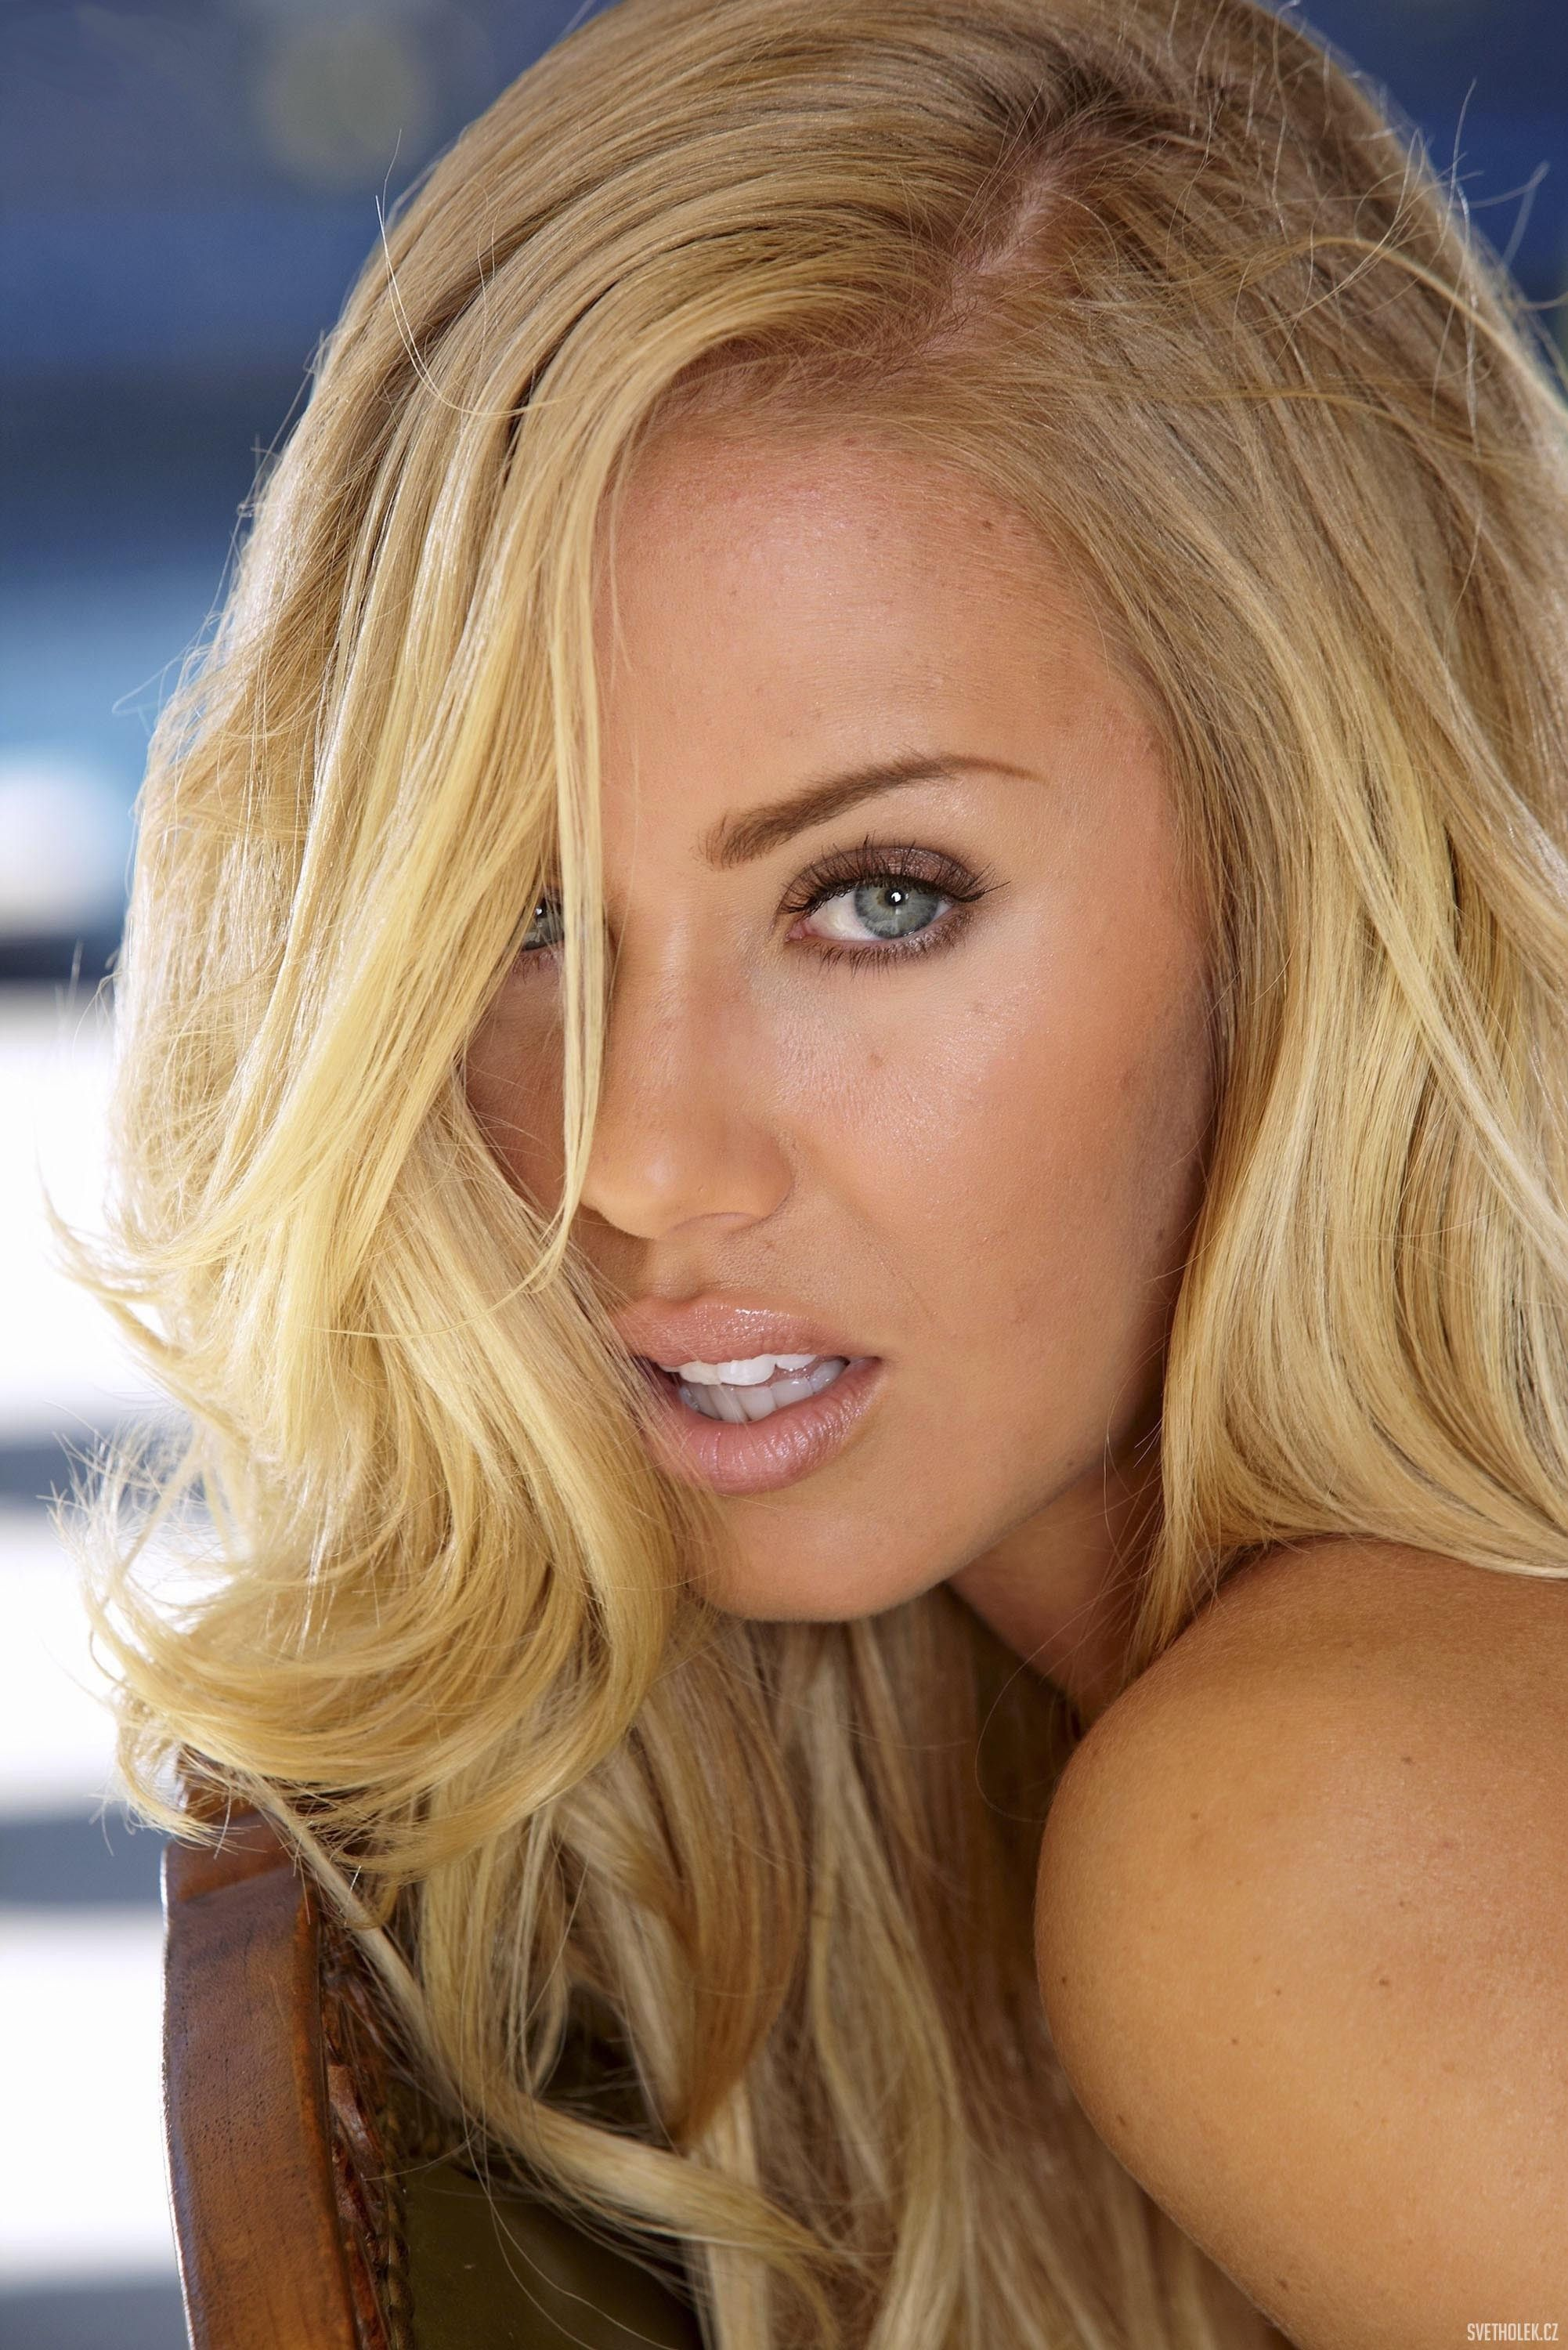 nicole aniston 3 nicole aniston in 2018 pinterest ashley nicole nicole miller and women. Black Bedroom Furniture Sets. Home Design Ideas